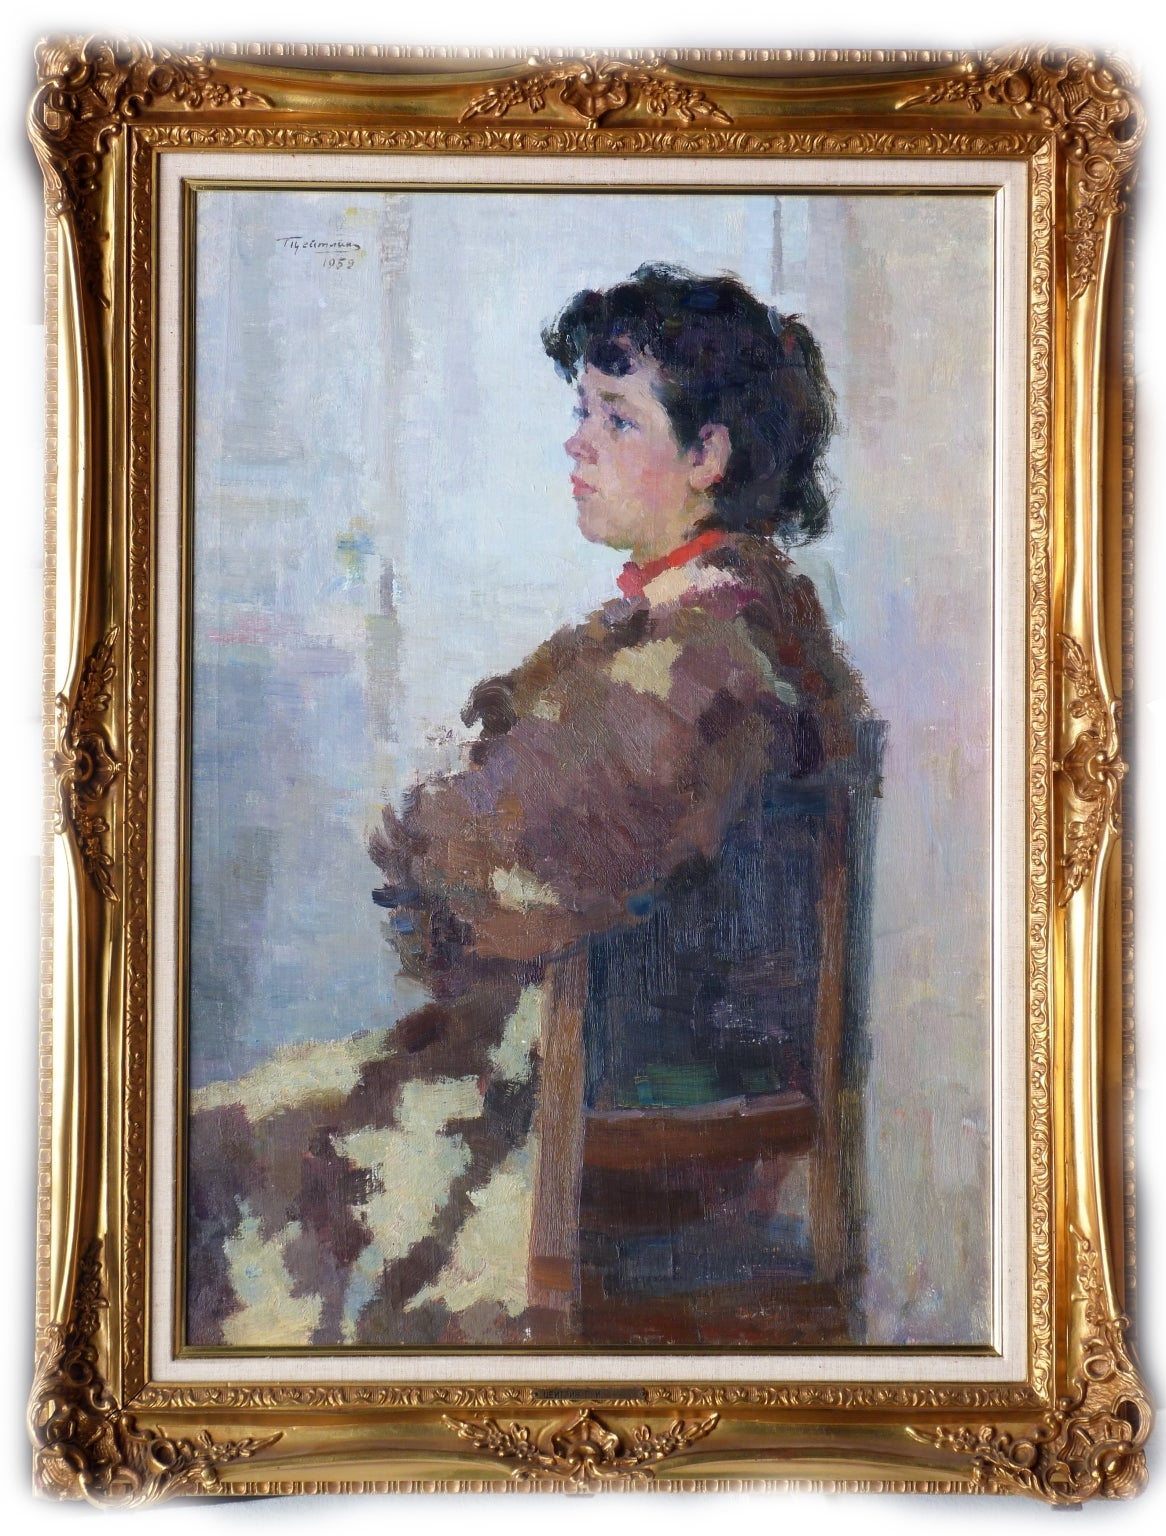 Portrait of a child sitting on a chair